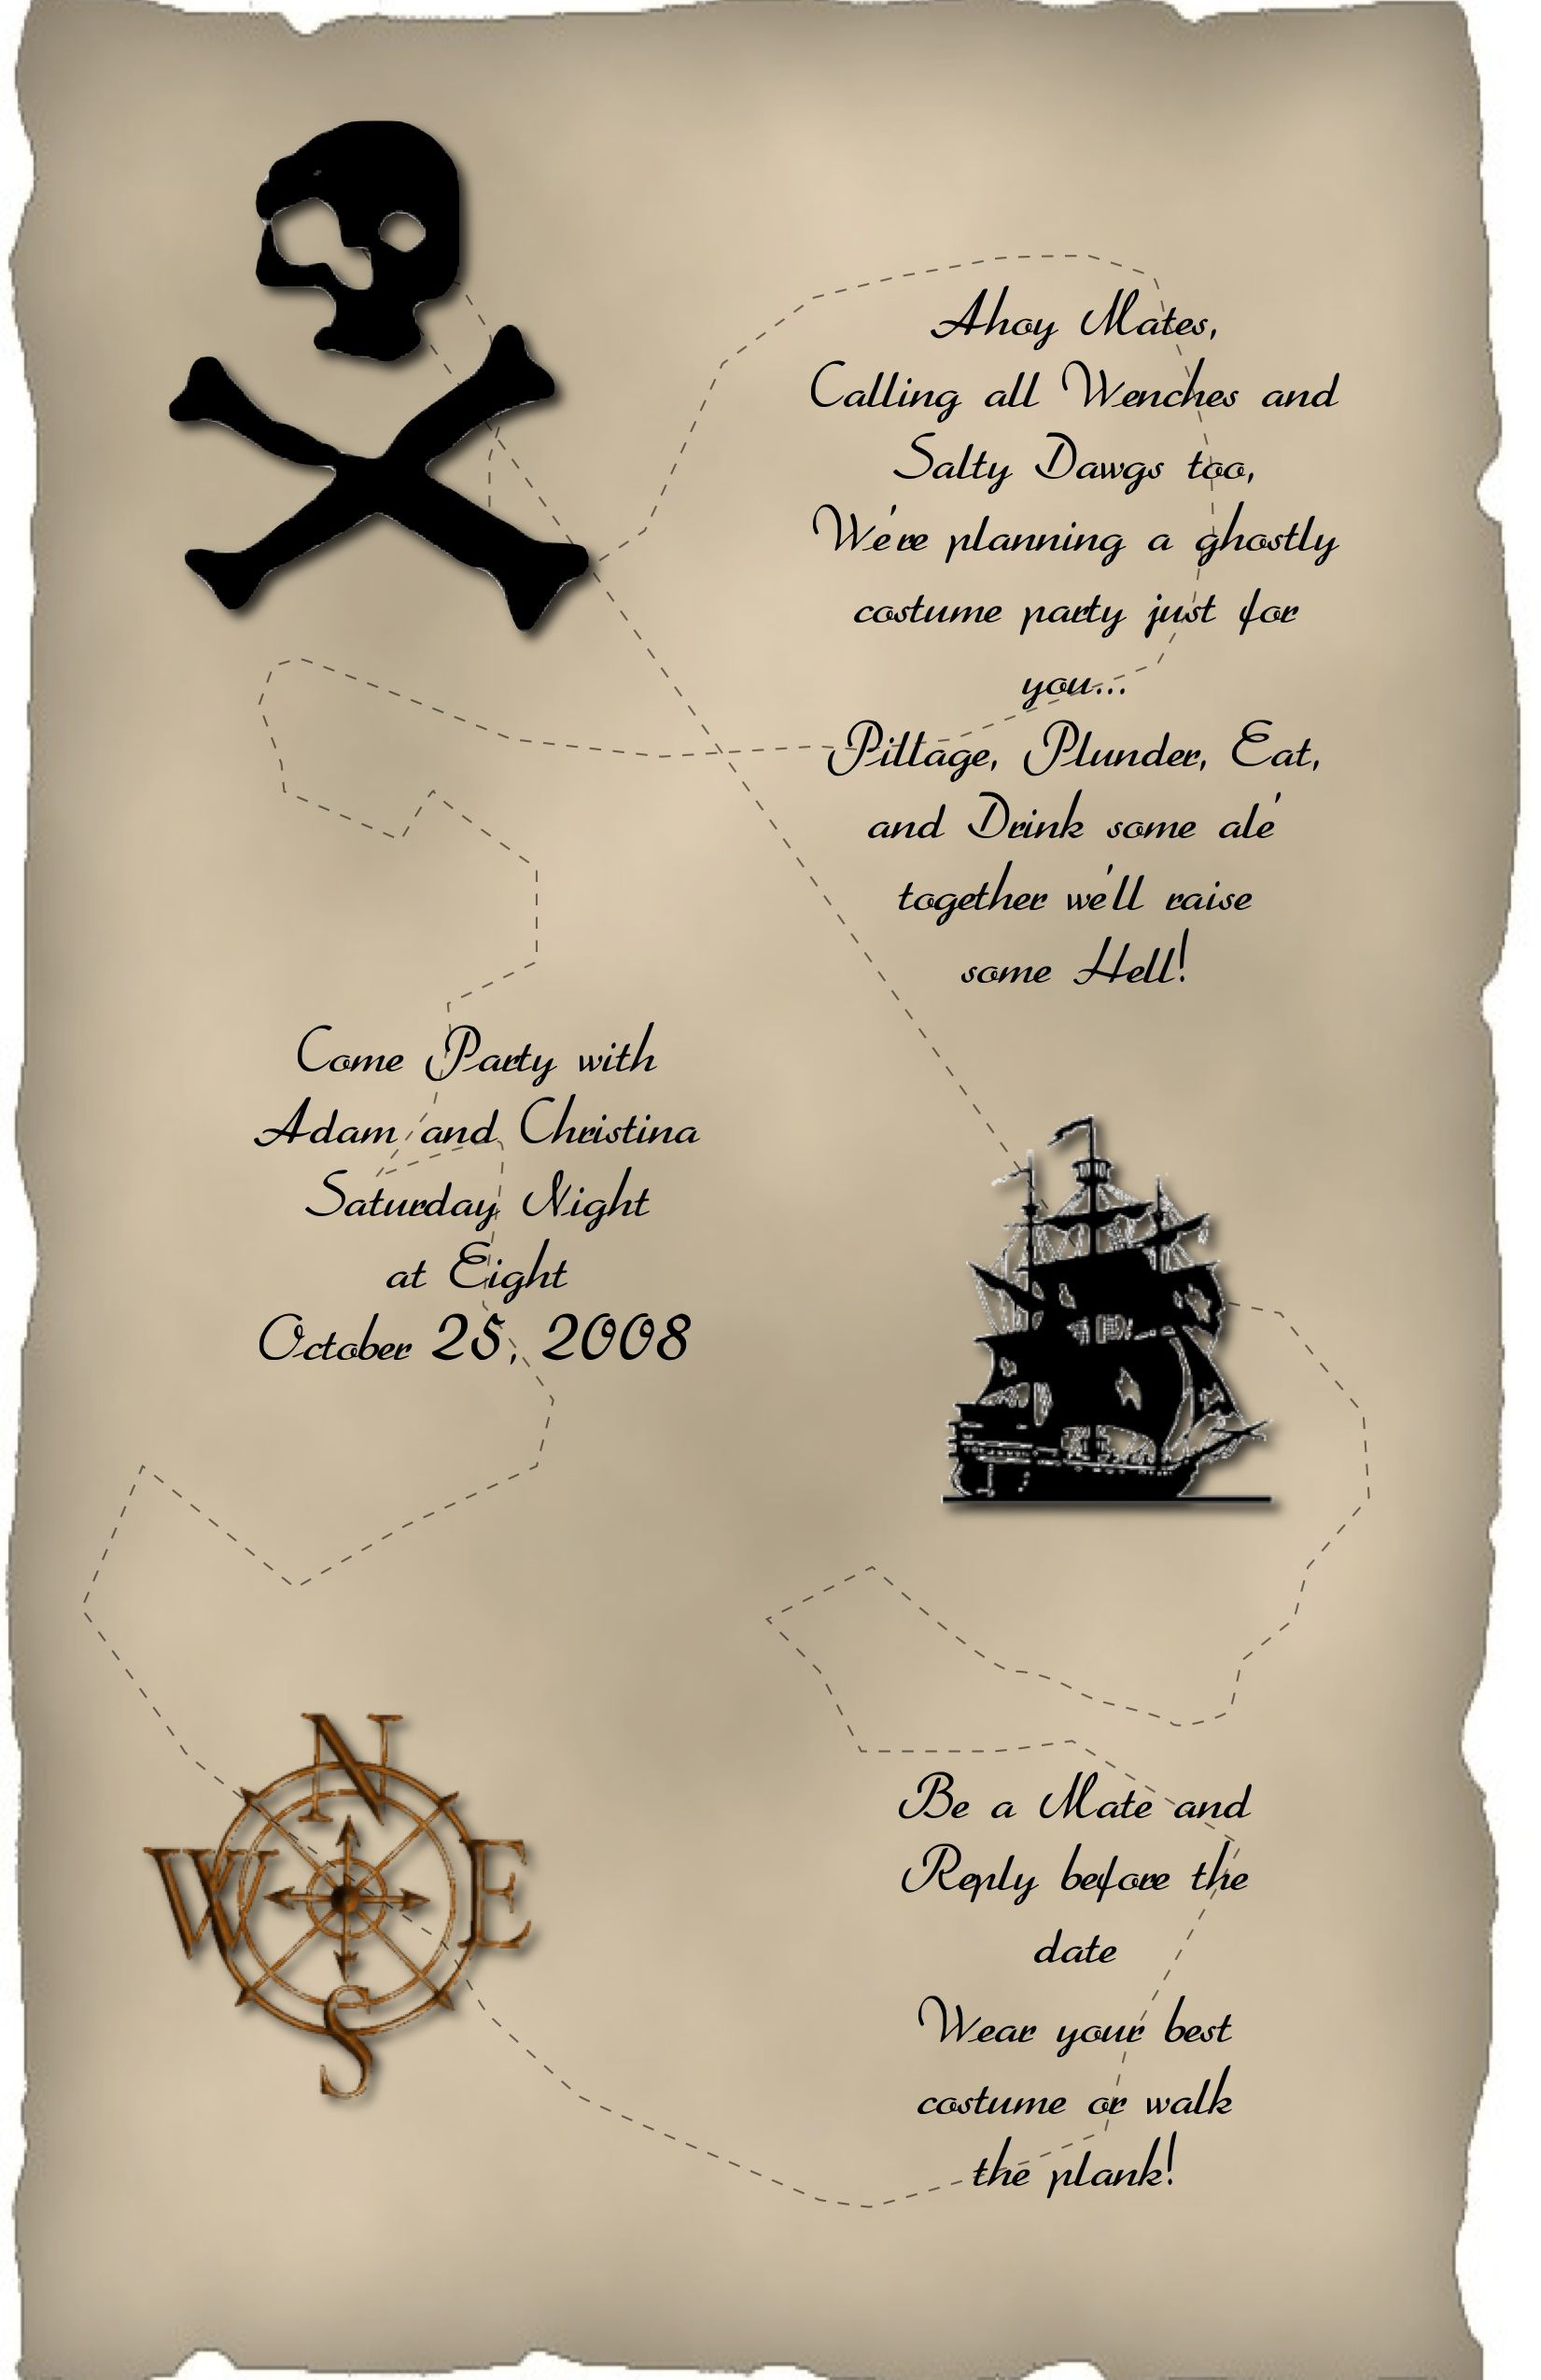 Halloween Invitation Wording: Pirate Theme | Halloween | Pinterest ...